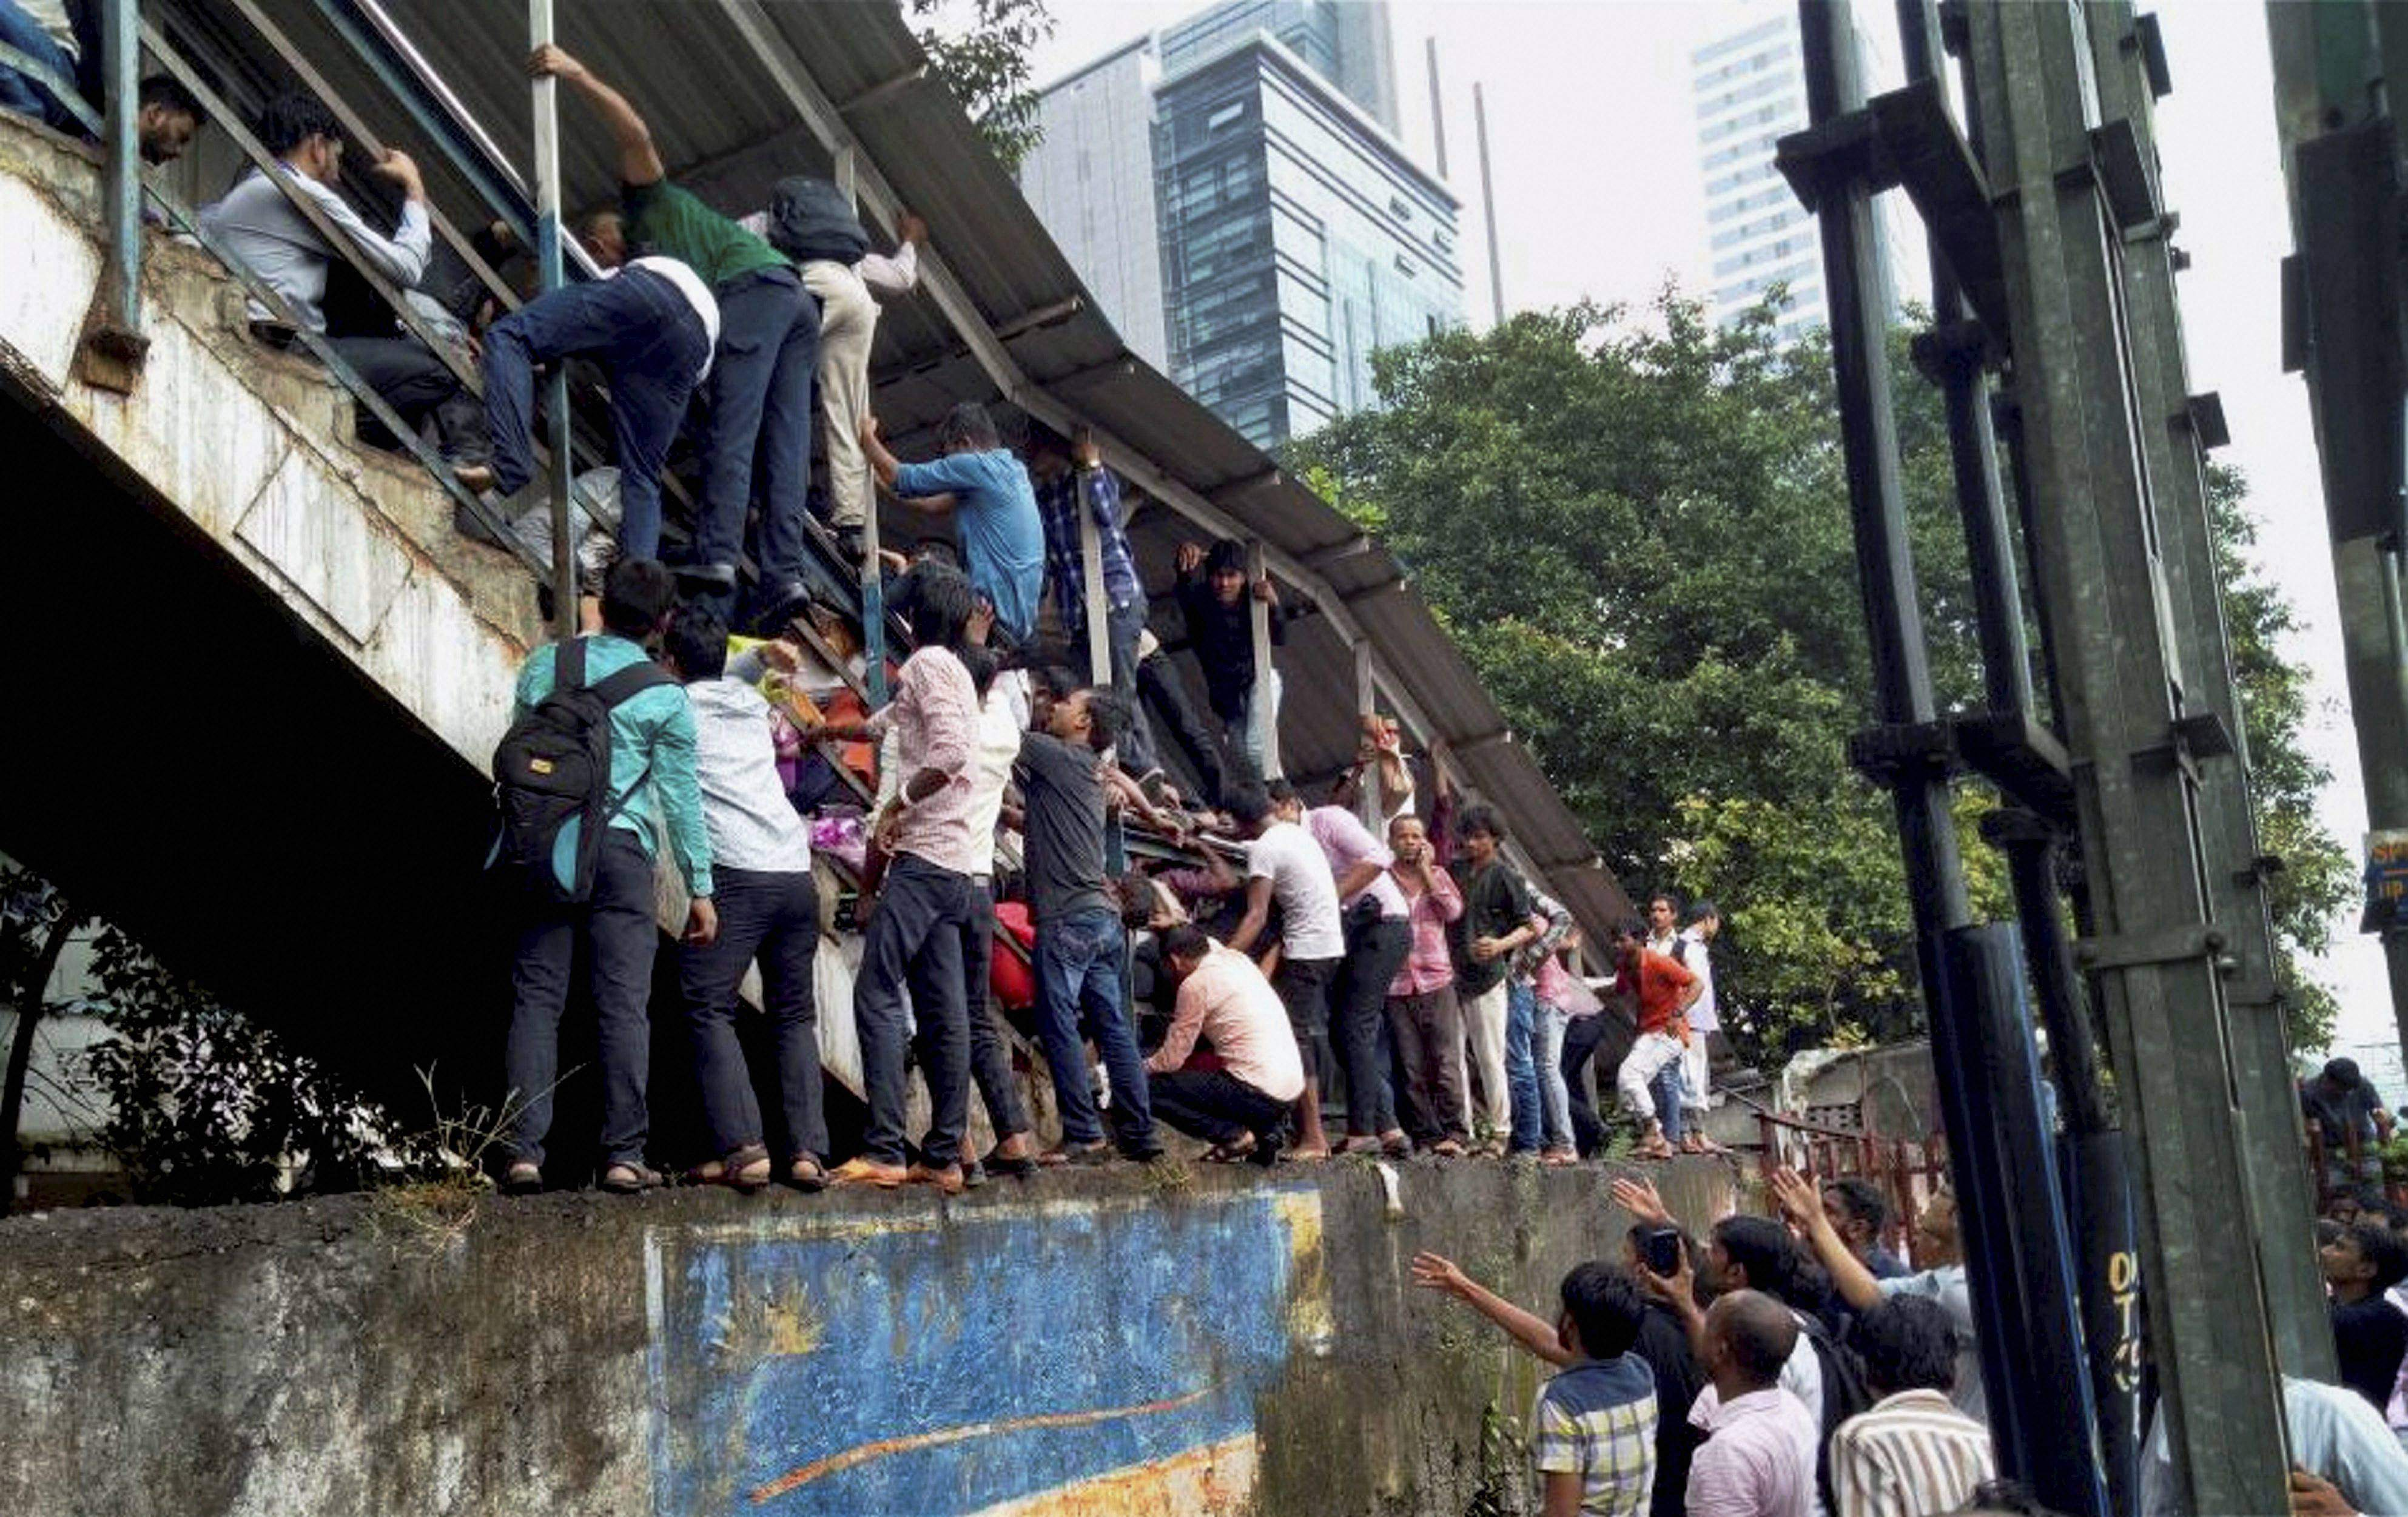 Property Is Expensive And Life Cheap On Elphinstone Road House Wiring Jobs In Mumbai Passengers Caught A Stampede Mumbais Railway Station Friday Credit Pti